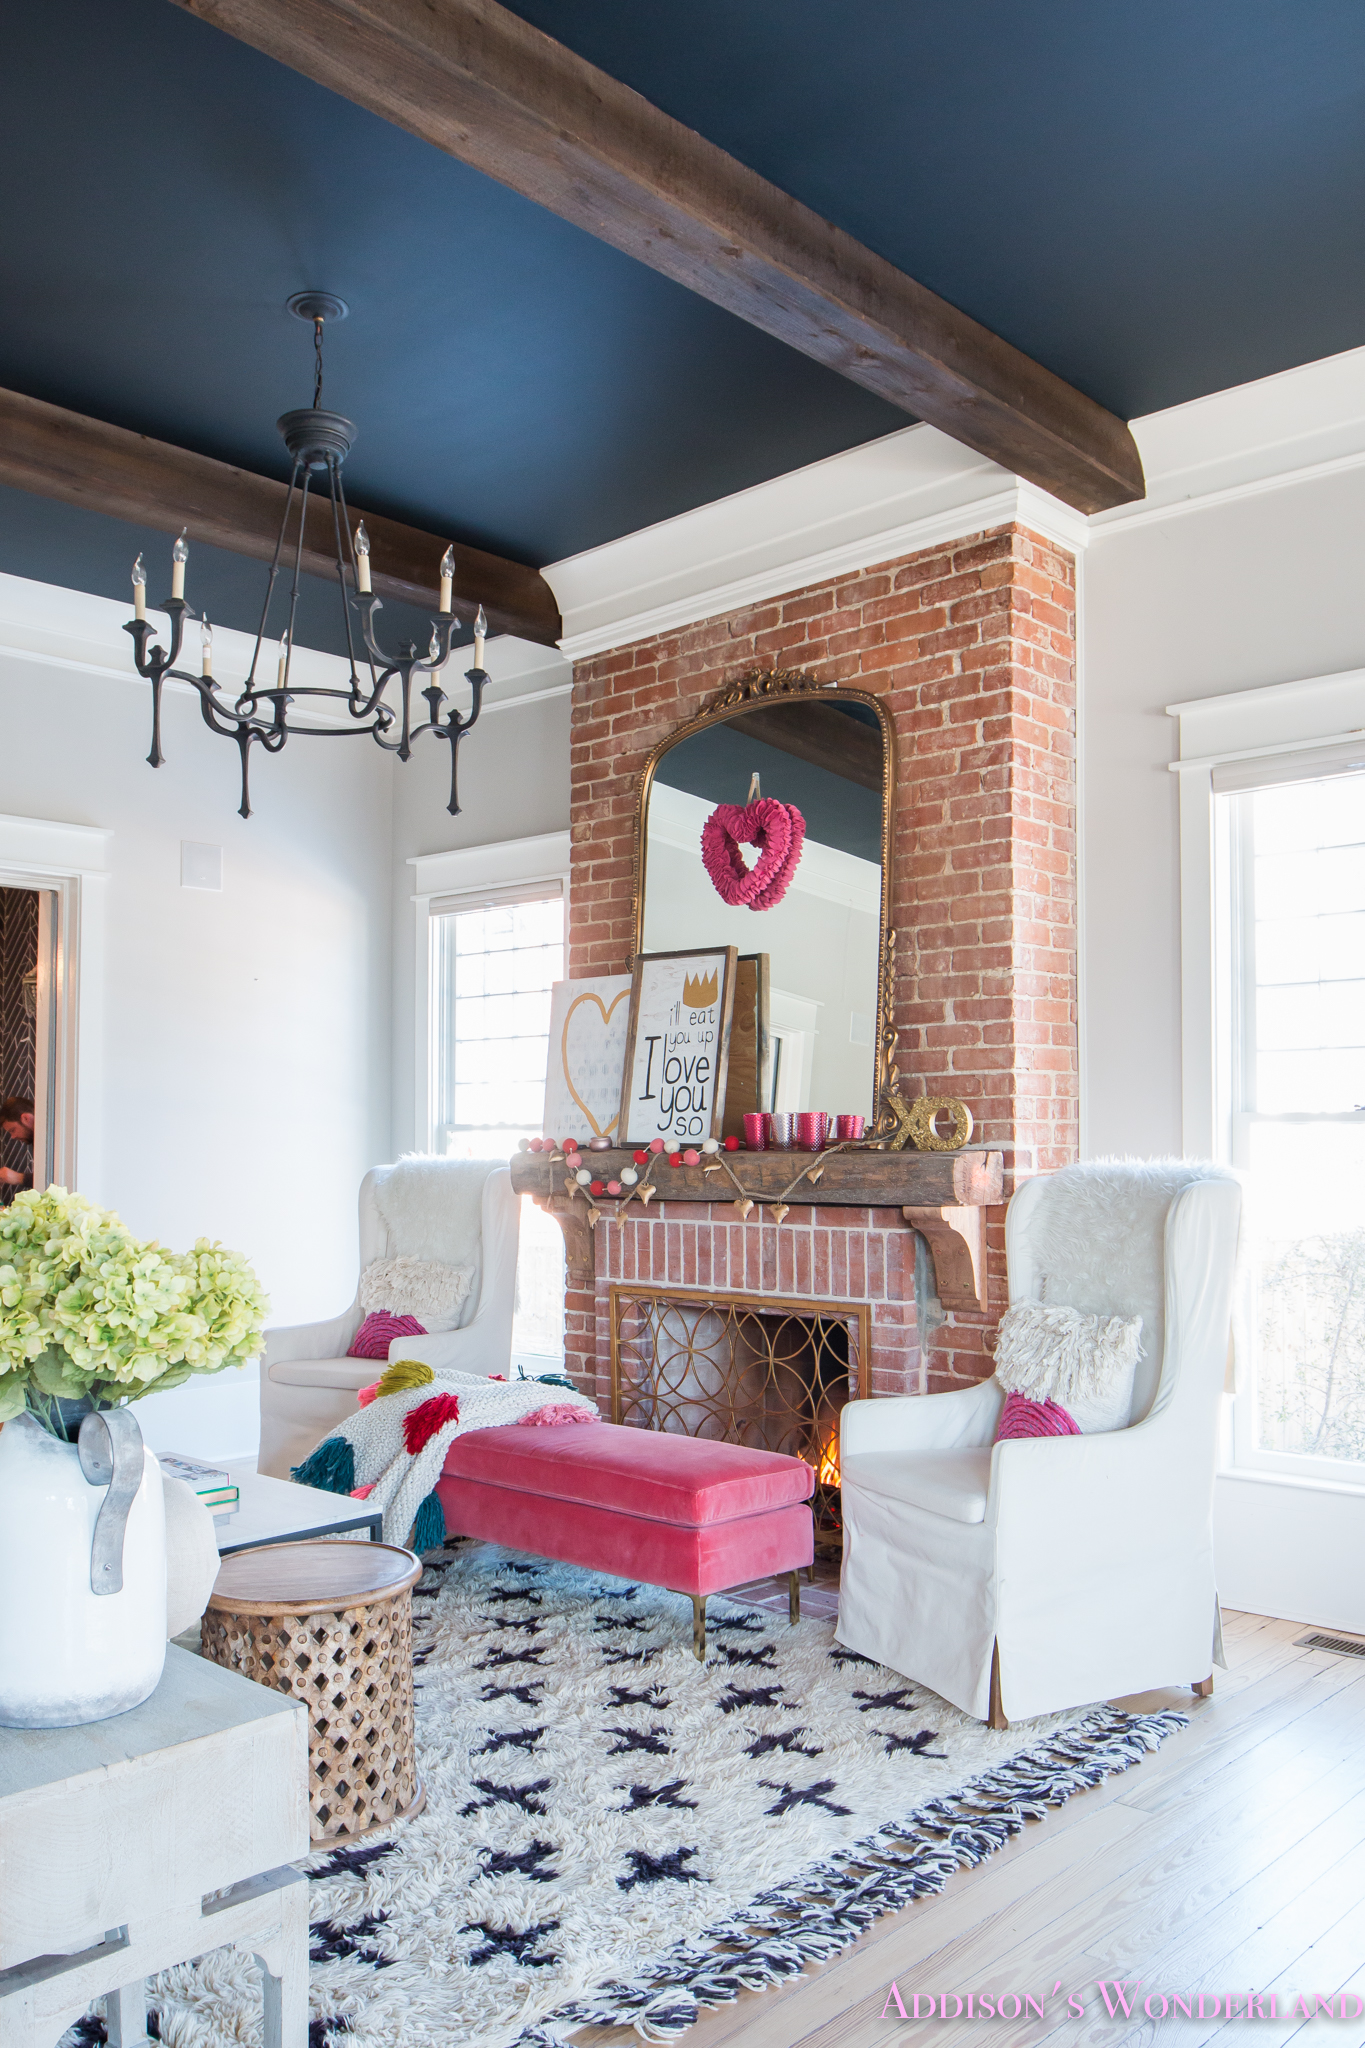 Our Colorful, Whimsical & Elegant Valentine's Day Living Room Decor…